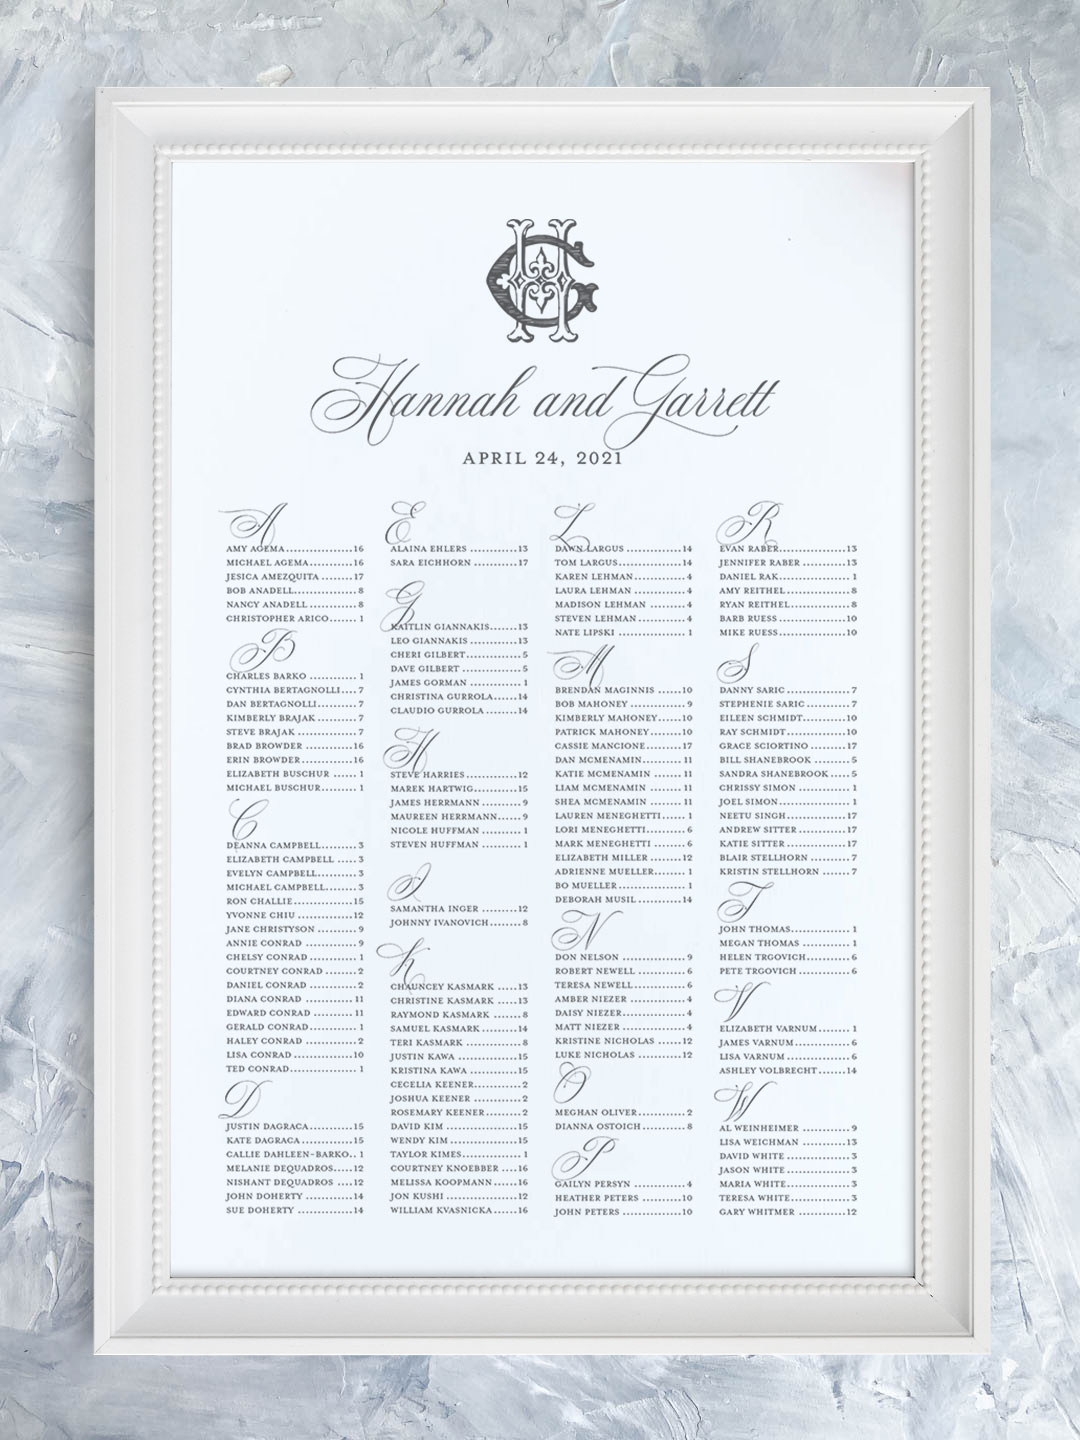 Wedding seating chart with traditional script font and vintage monogram organized alphabetically.